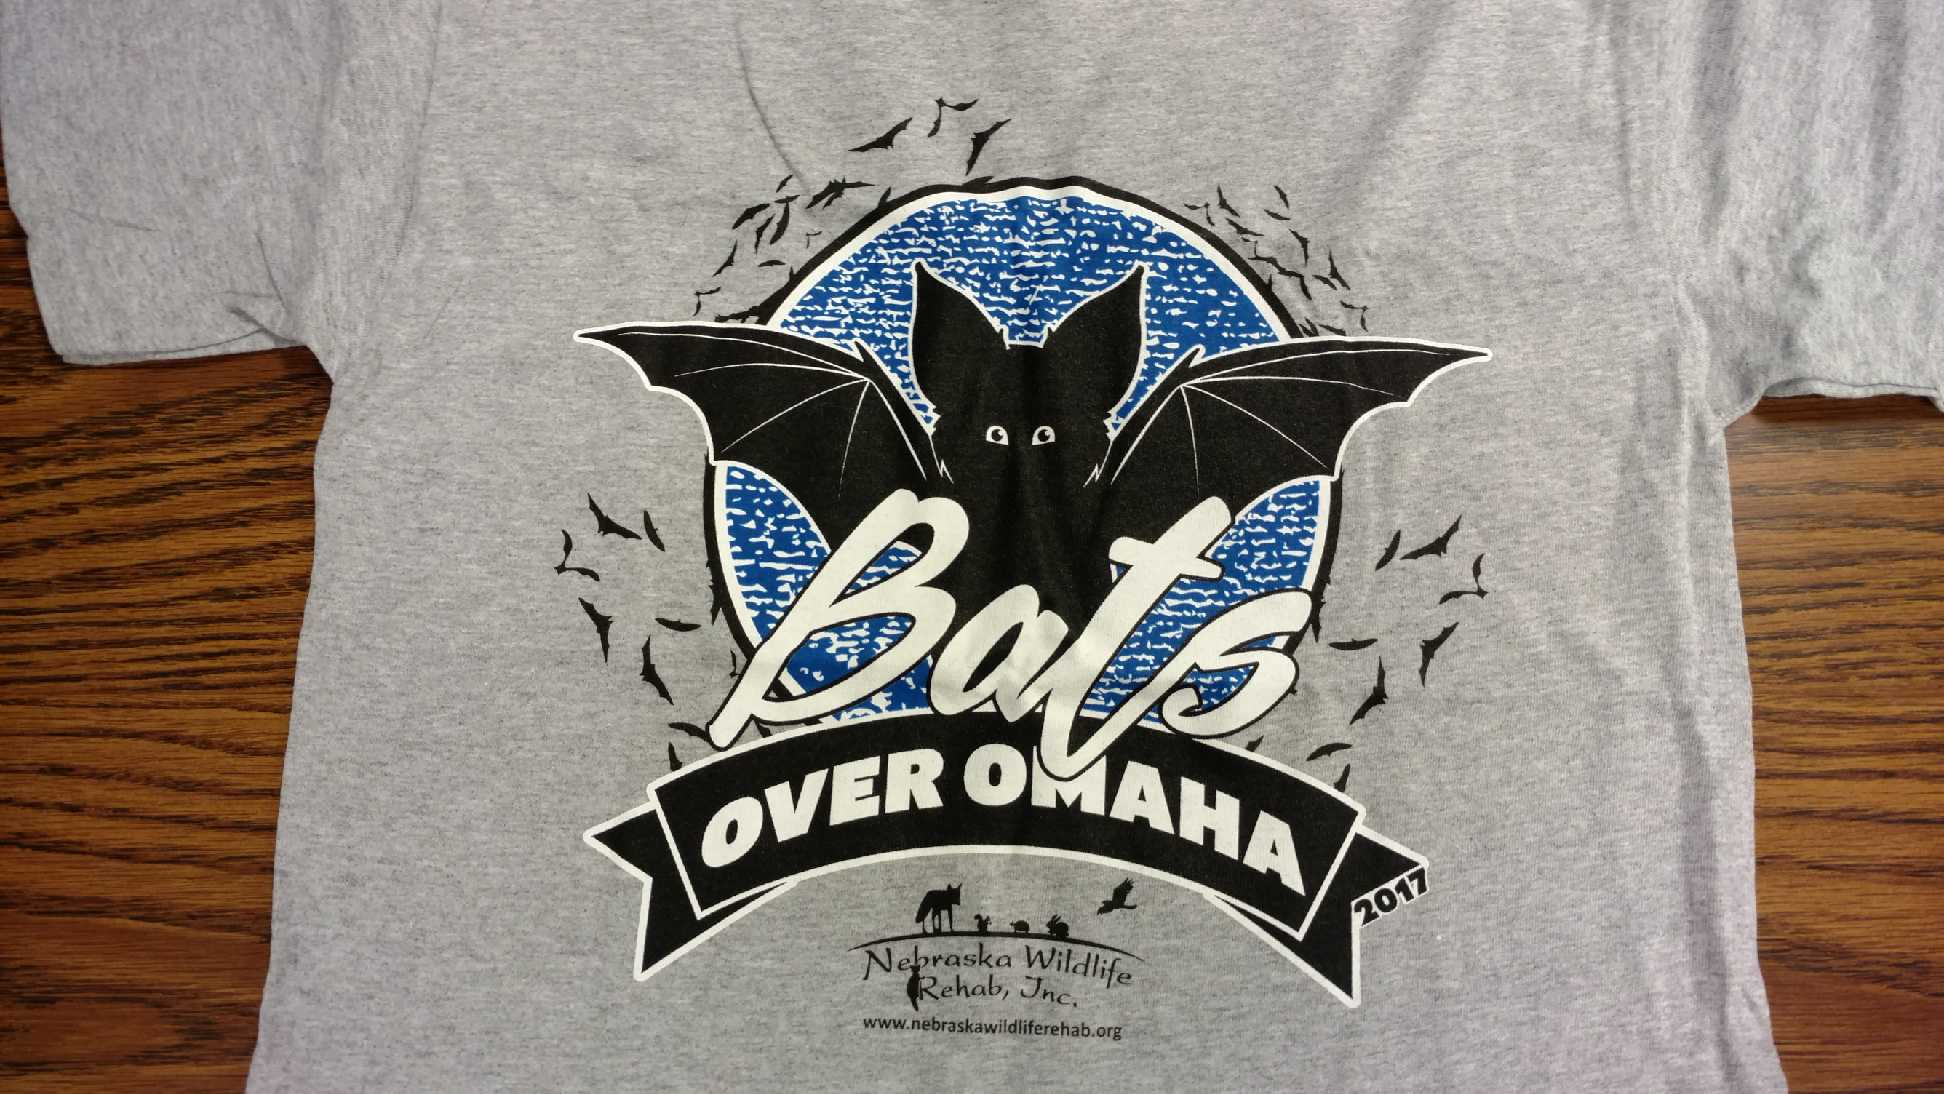 Bats Over Omaha Bat Release T-Shirt - 2017: Adult Small, Gray